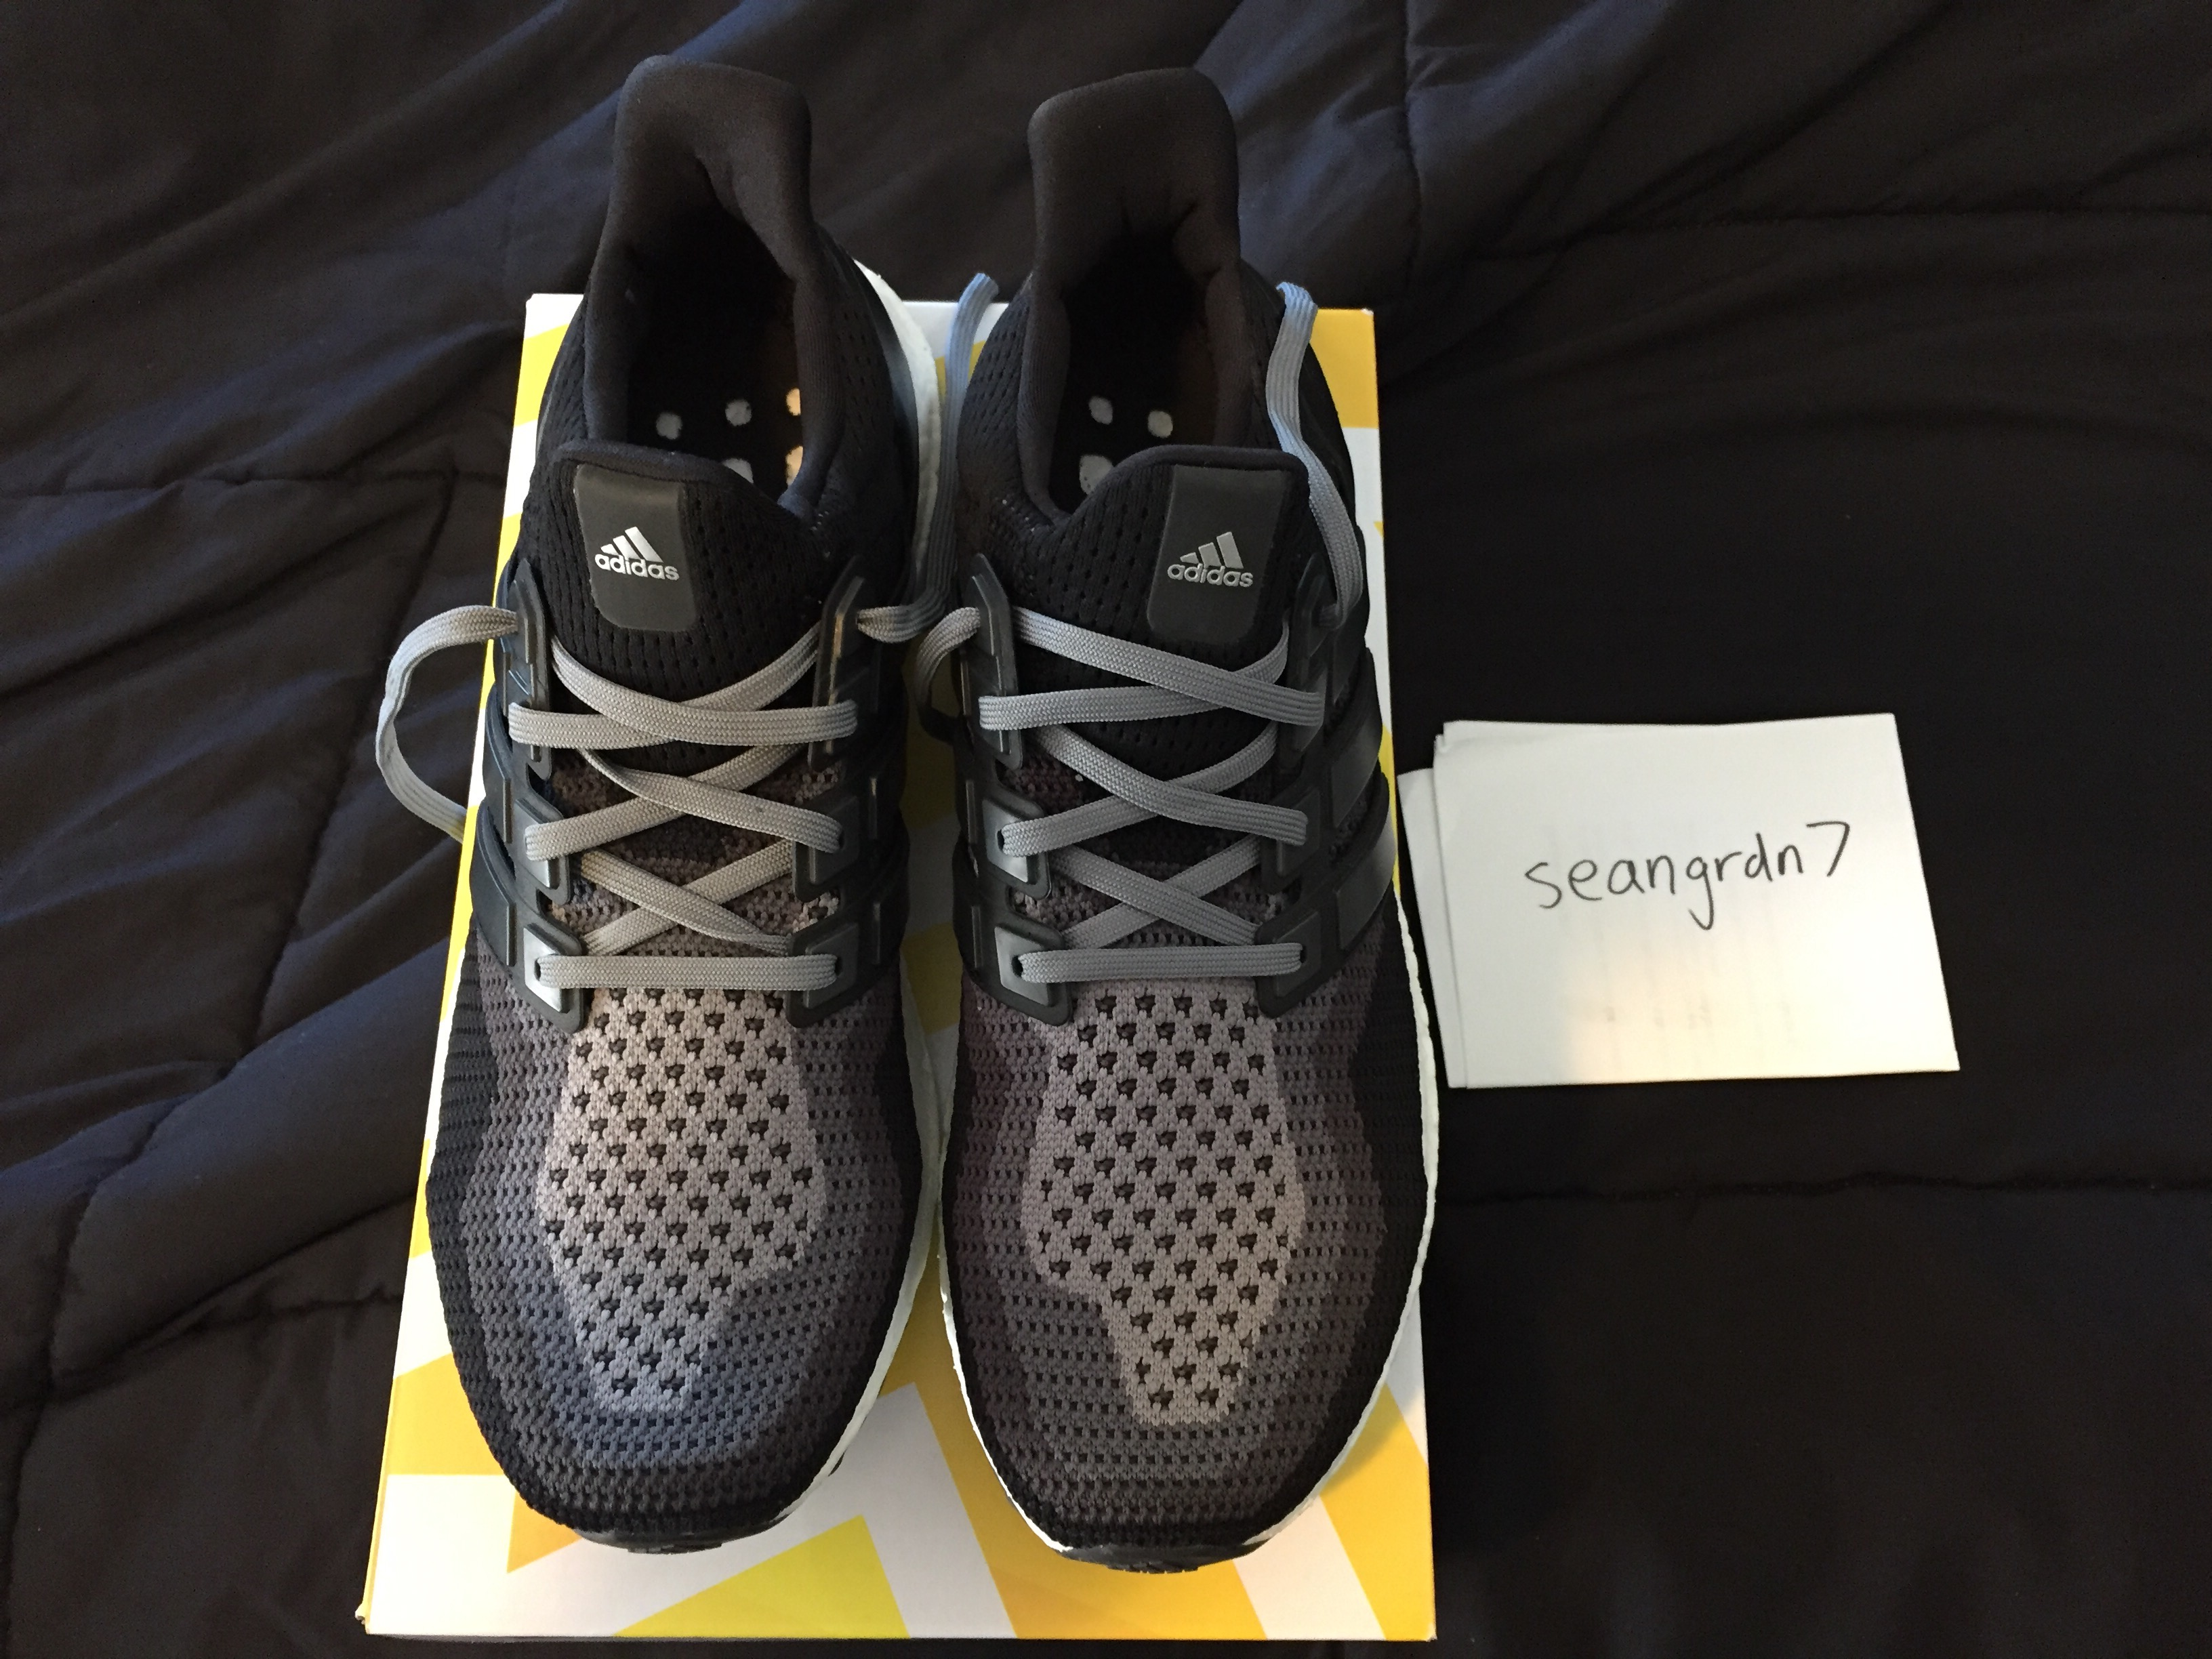 42f7c91a1 Adidas Adidas Ultra Boost M 2.0 Black Grey Gradient Size 11 Size 11 -  Low-Top Sneakers for Sale - Grailed